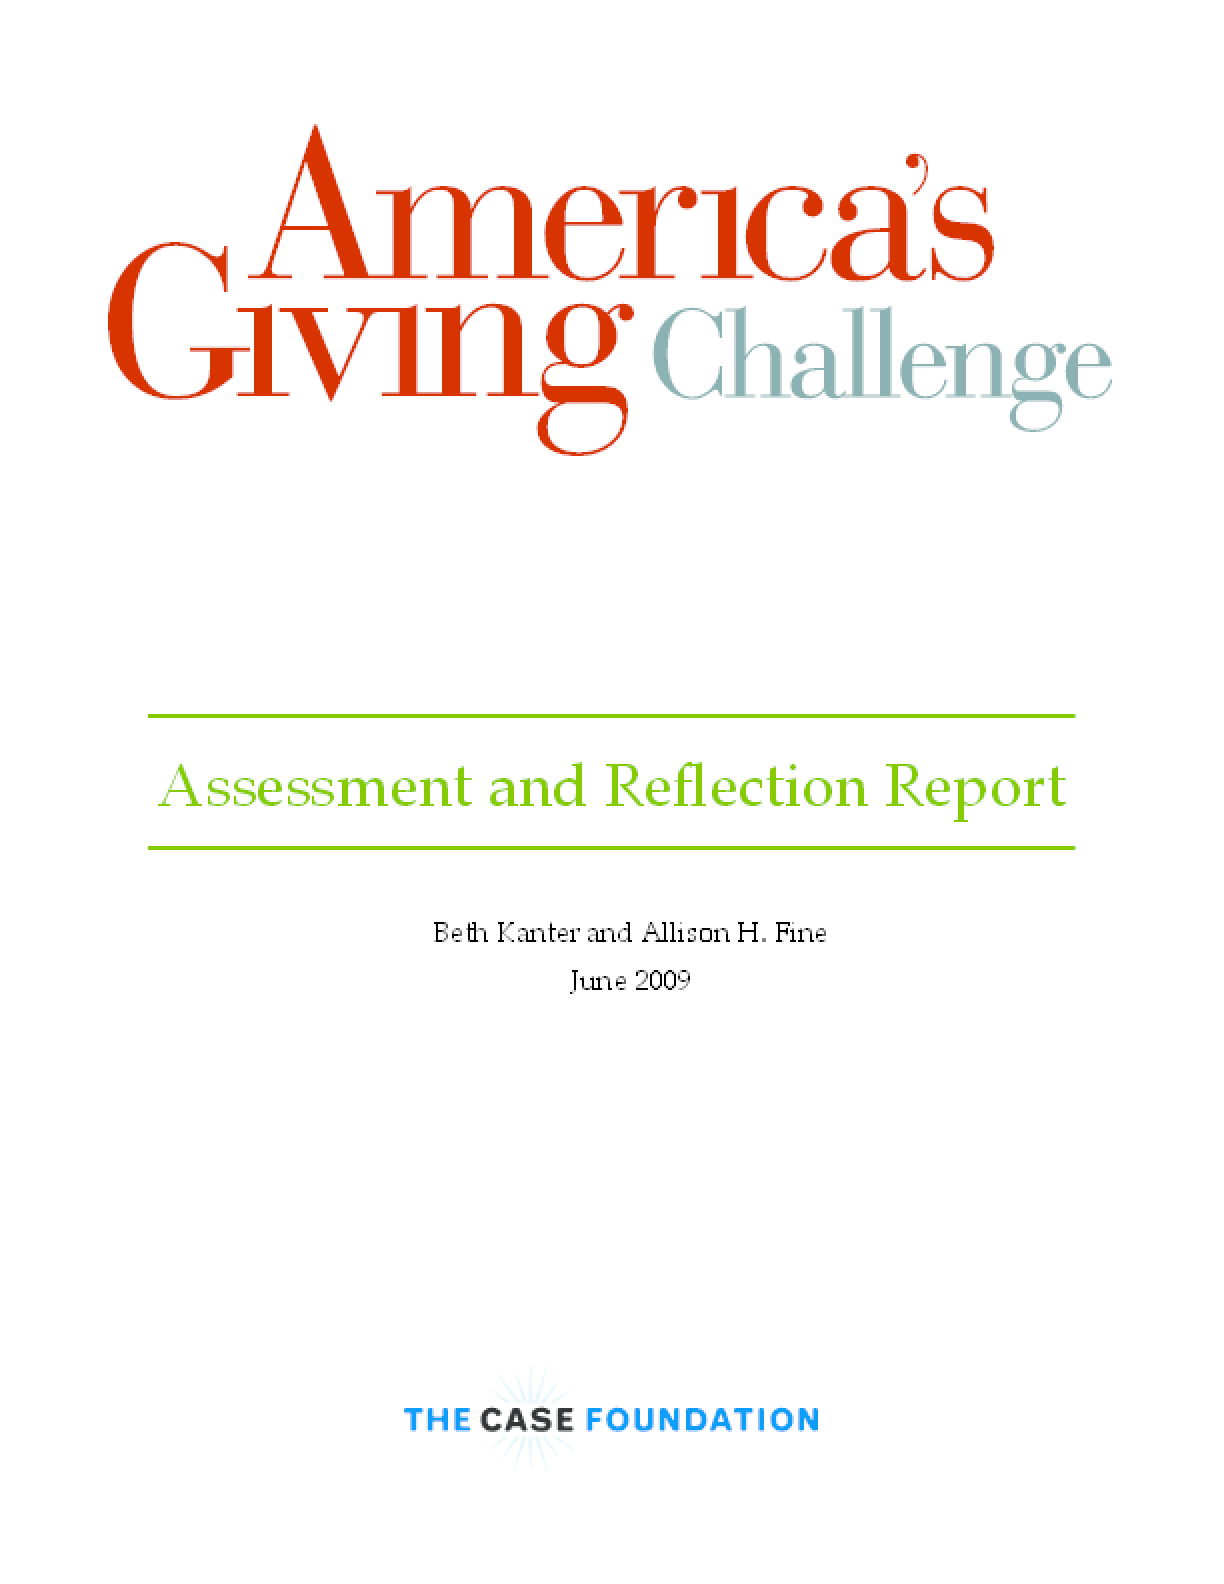 America's Giving Challenge: Assessment and Reflection Report